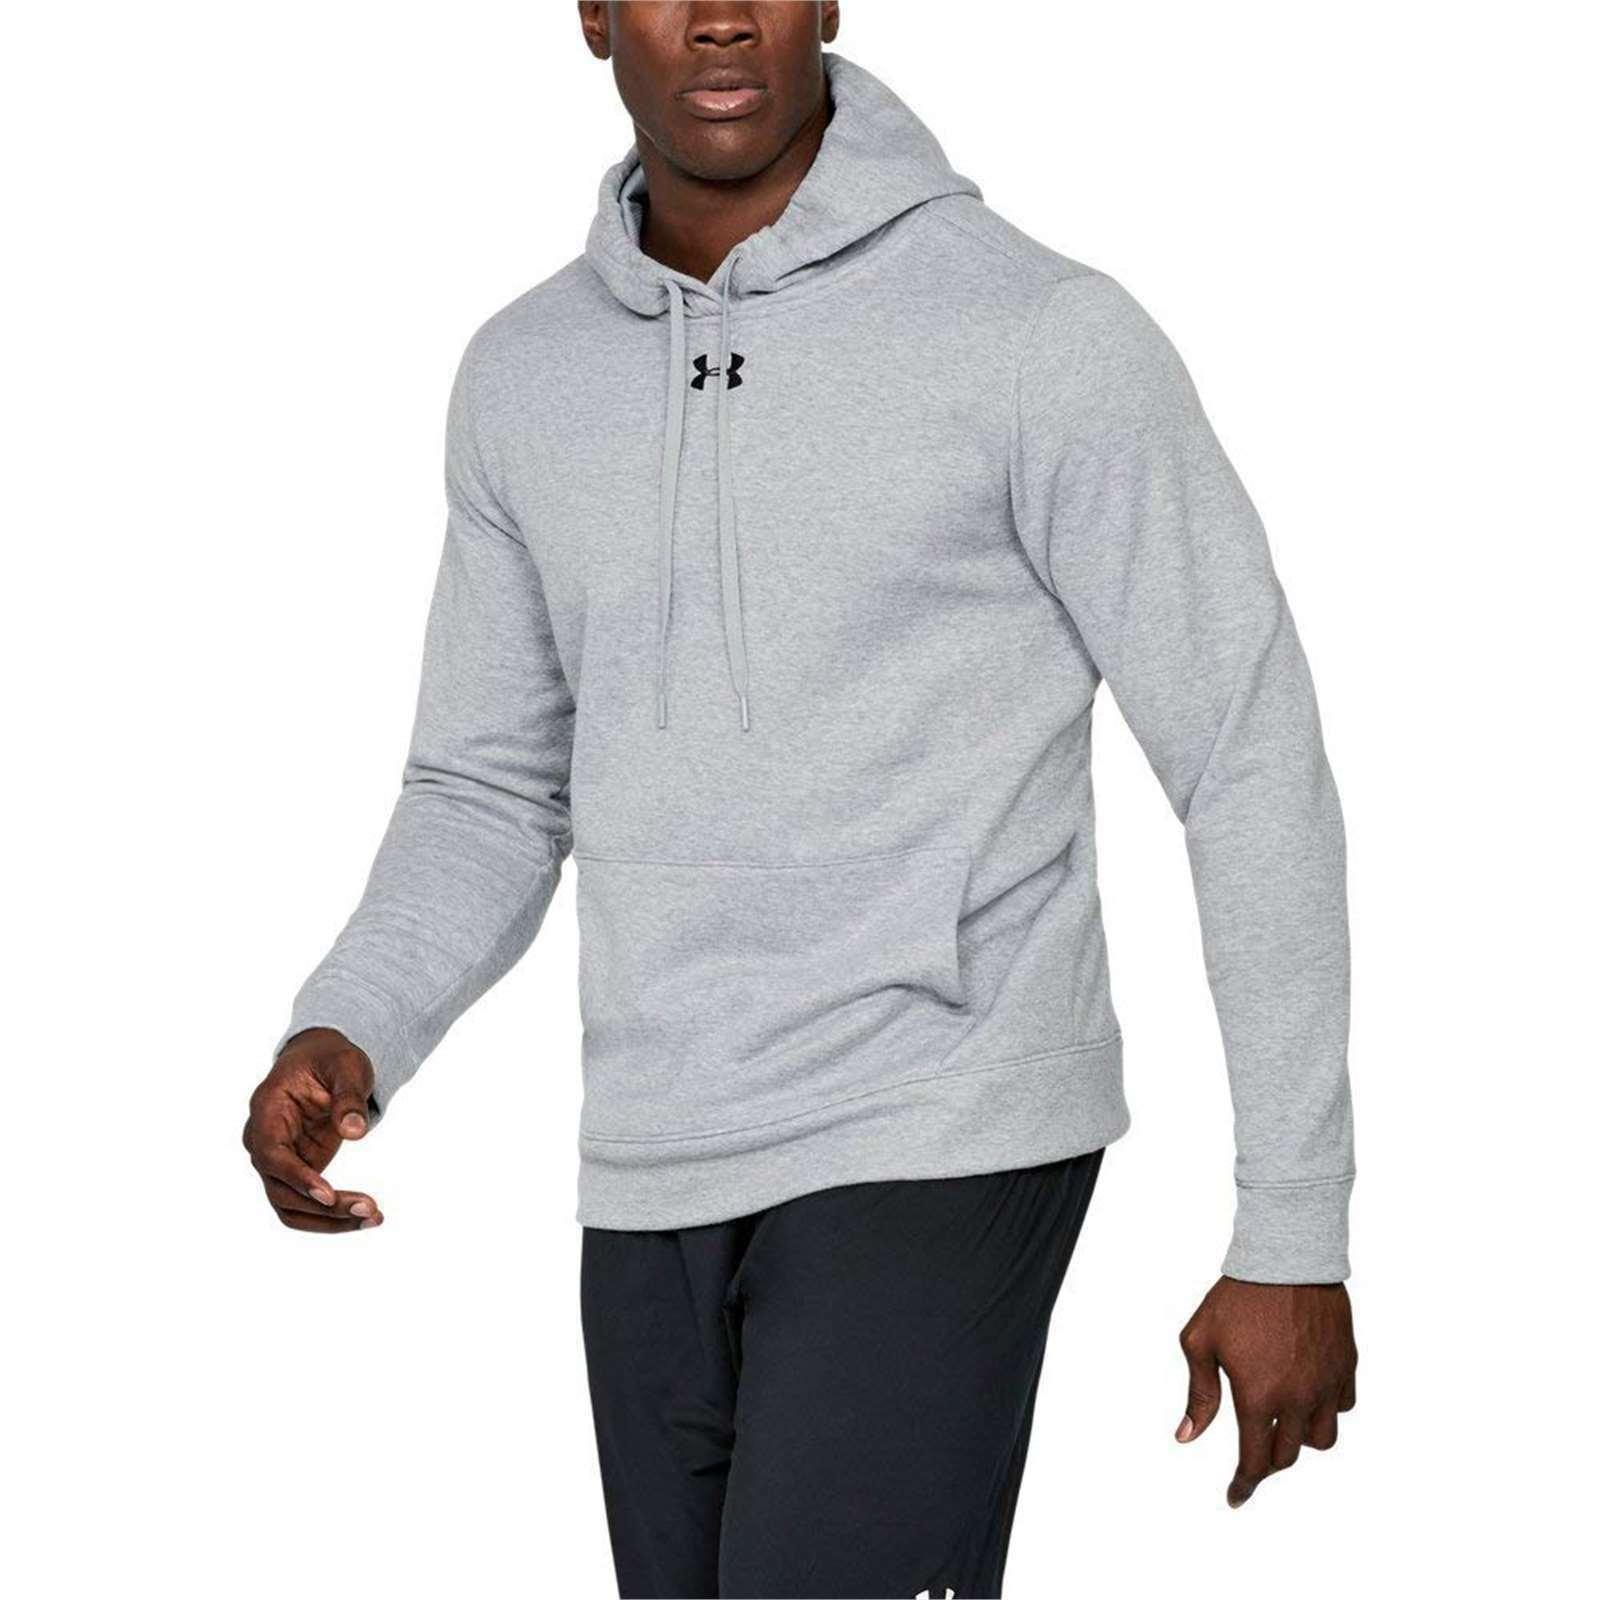 NEW Under Armour Men's Athletic Apparel Rival Fleece Fitte